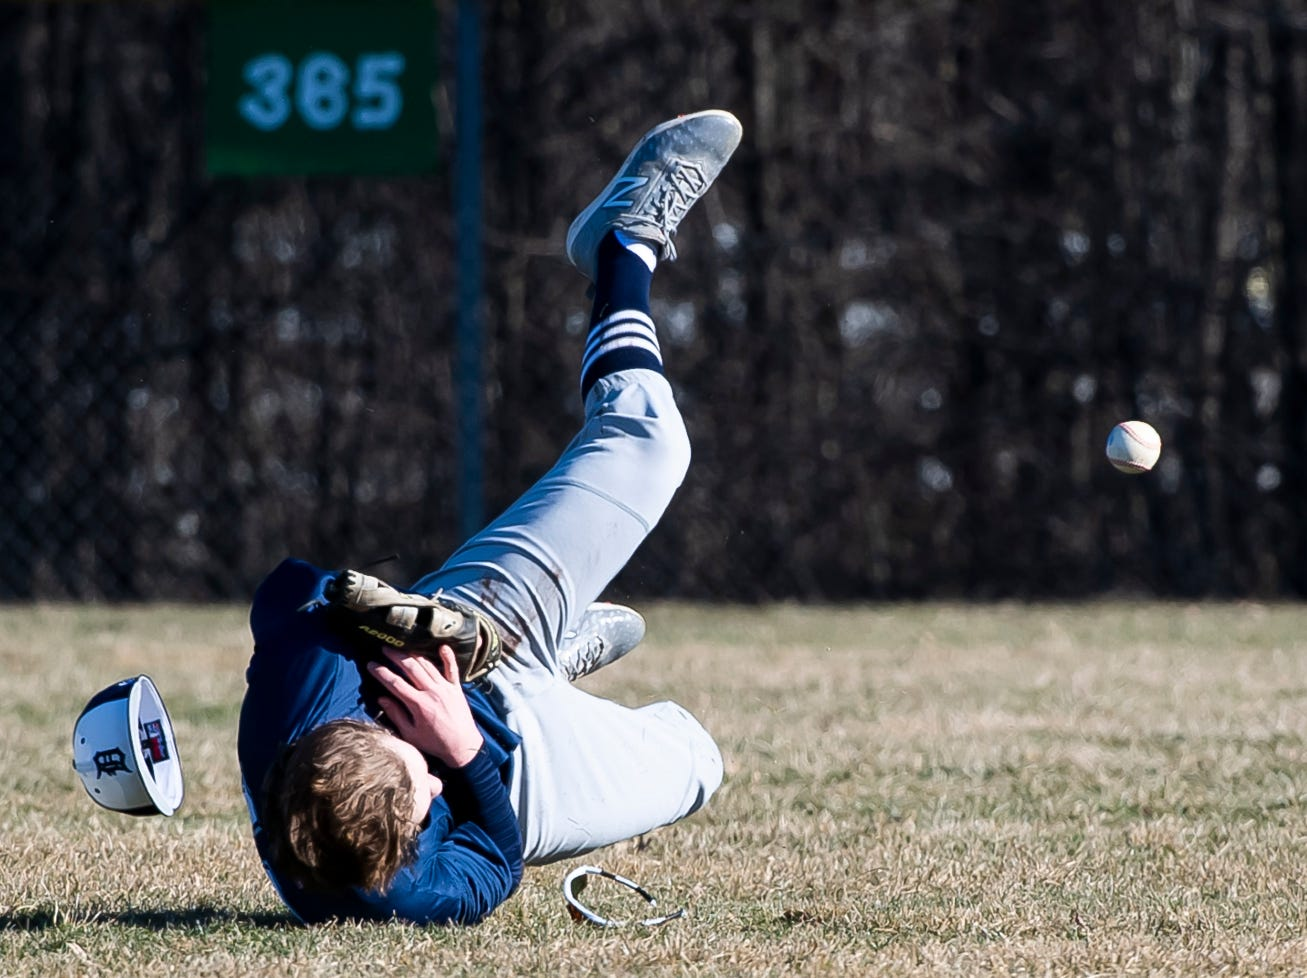 A Dallastown outfielder loses his hat and sunglasses after making a diving attempt at a catch during a YAIAA baseball game against Gettysburg on Wednesday, March 27, 2019.